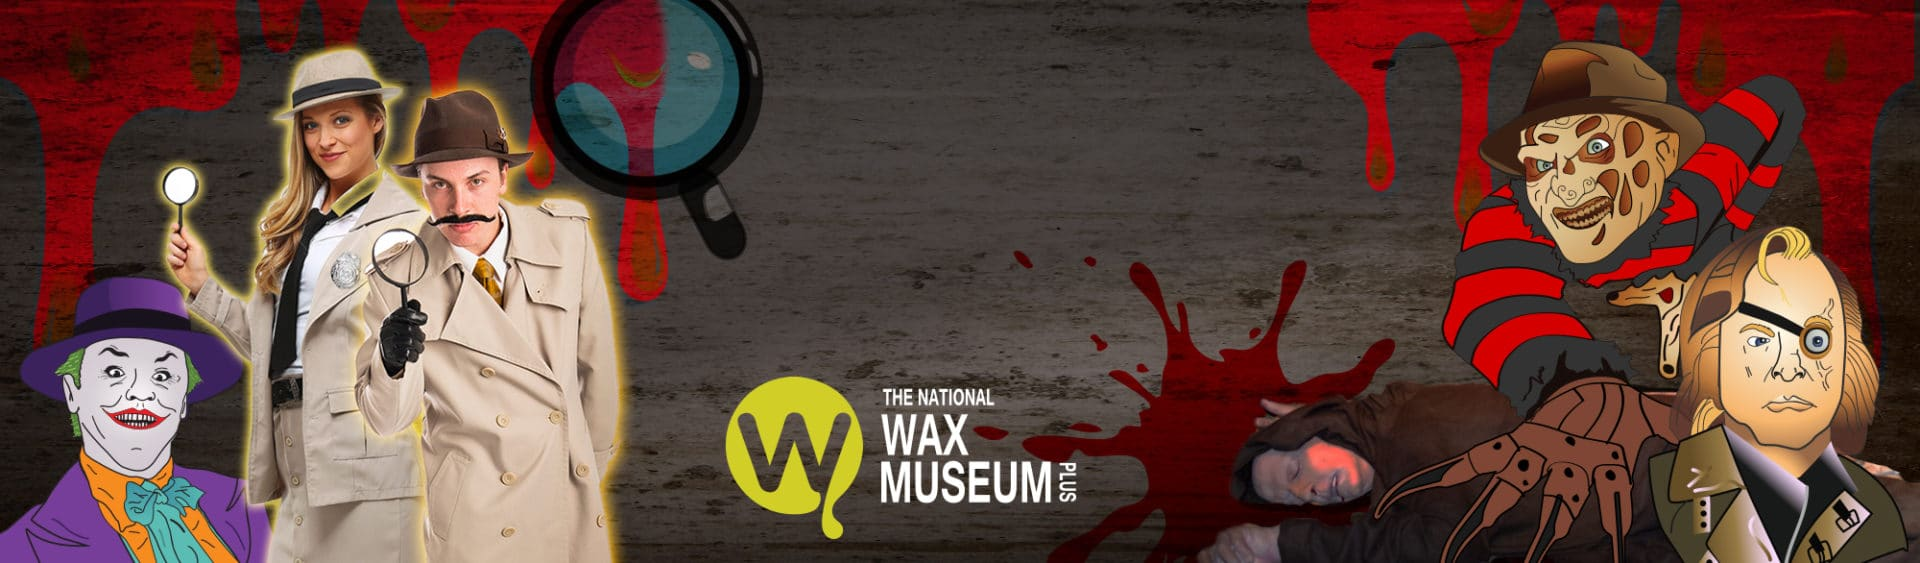 Murder Mystery at The National Wax Museum Plus